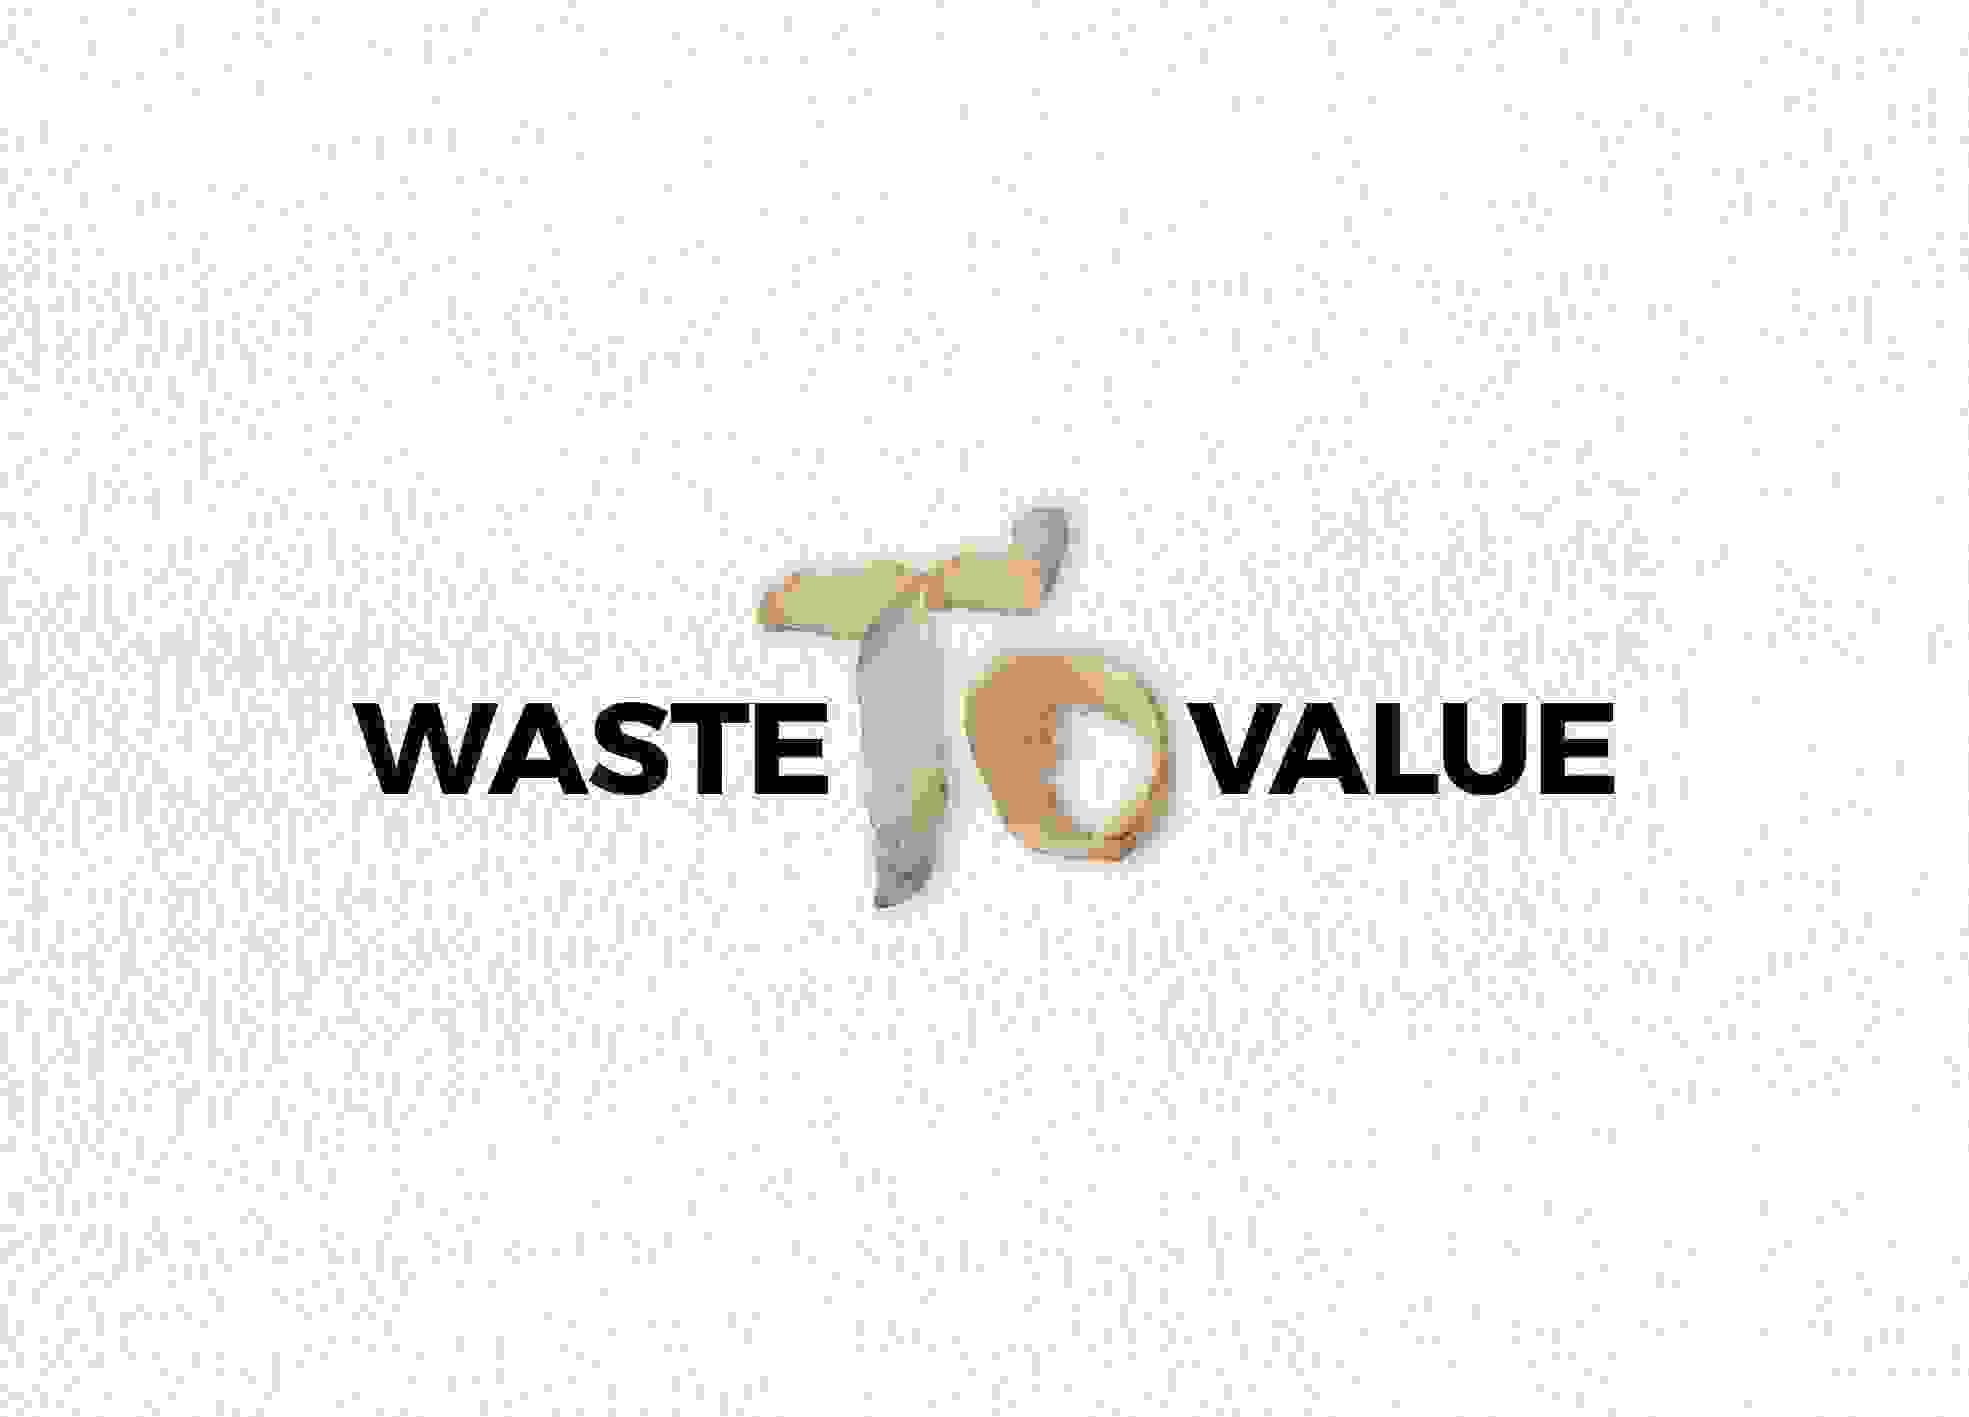 wasteTOvalue.jpg